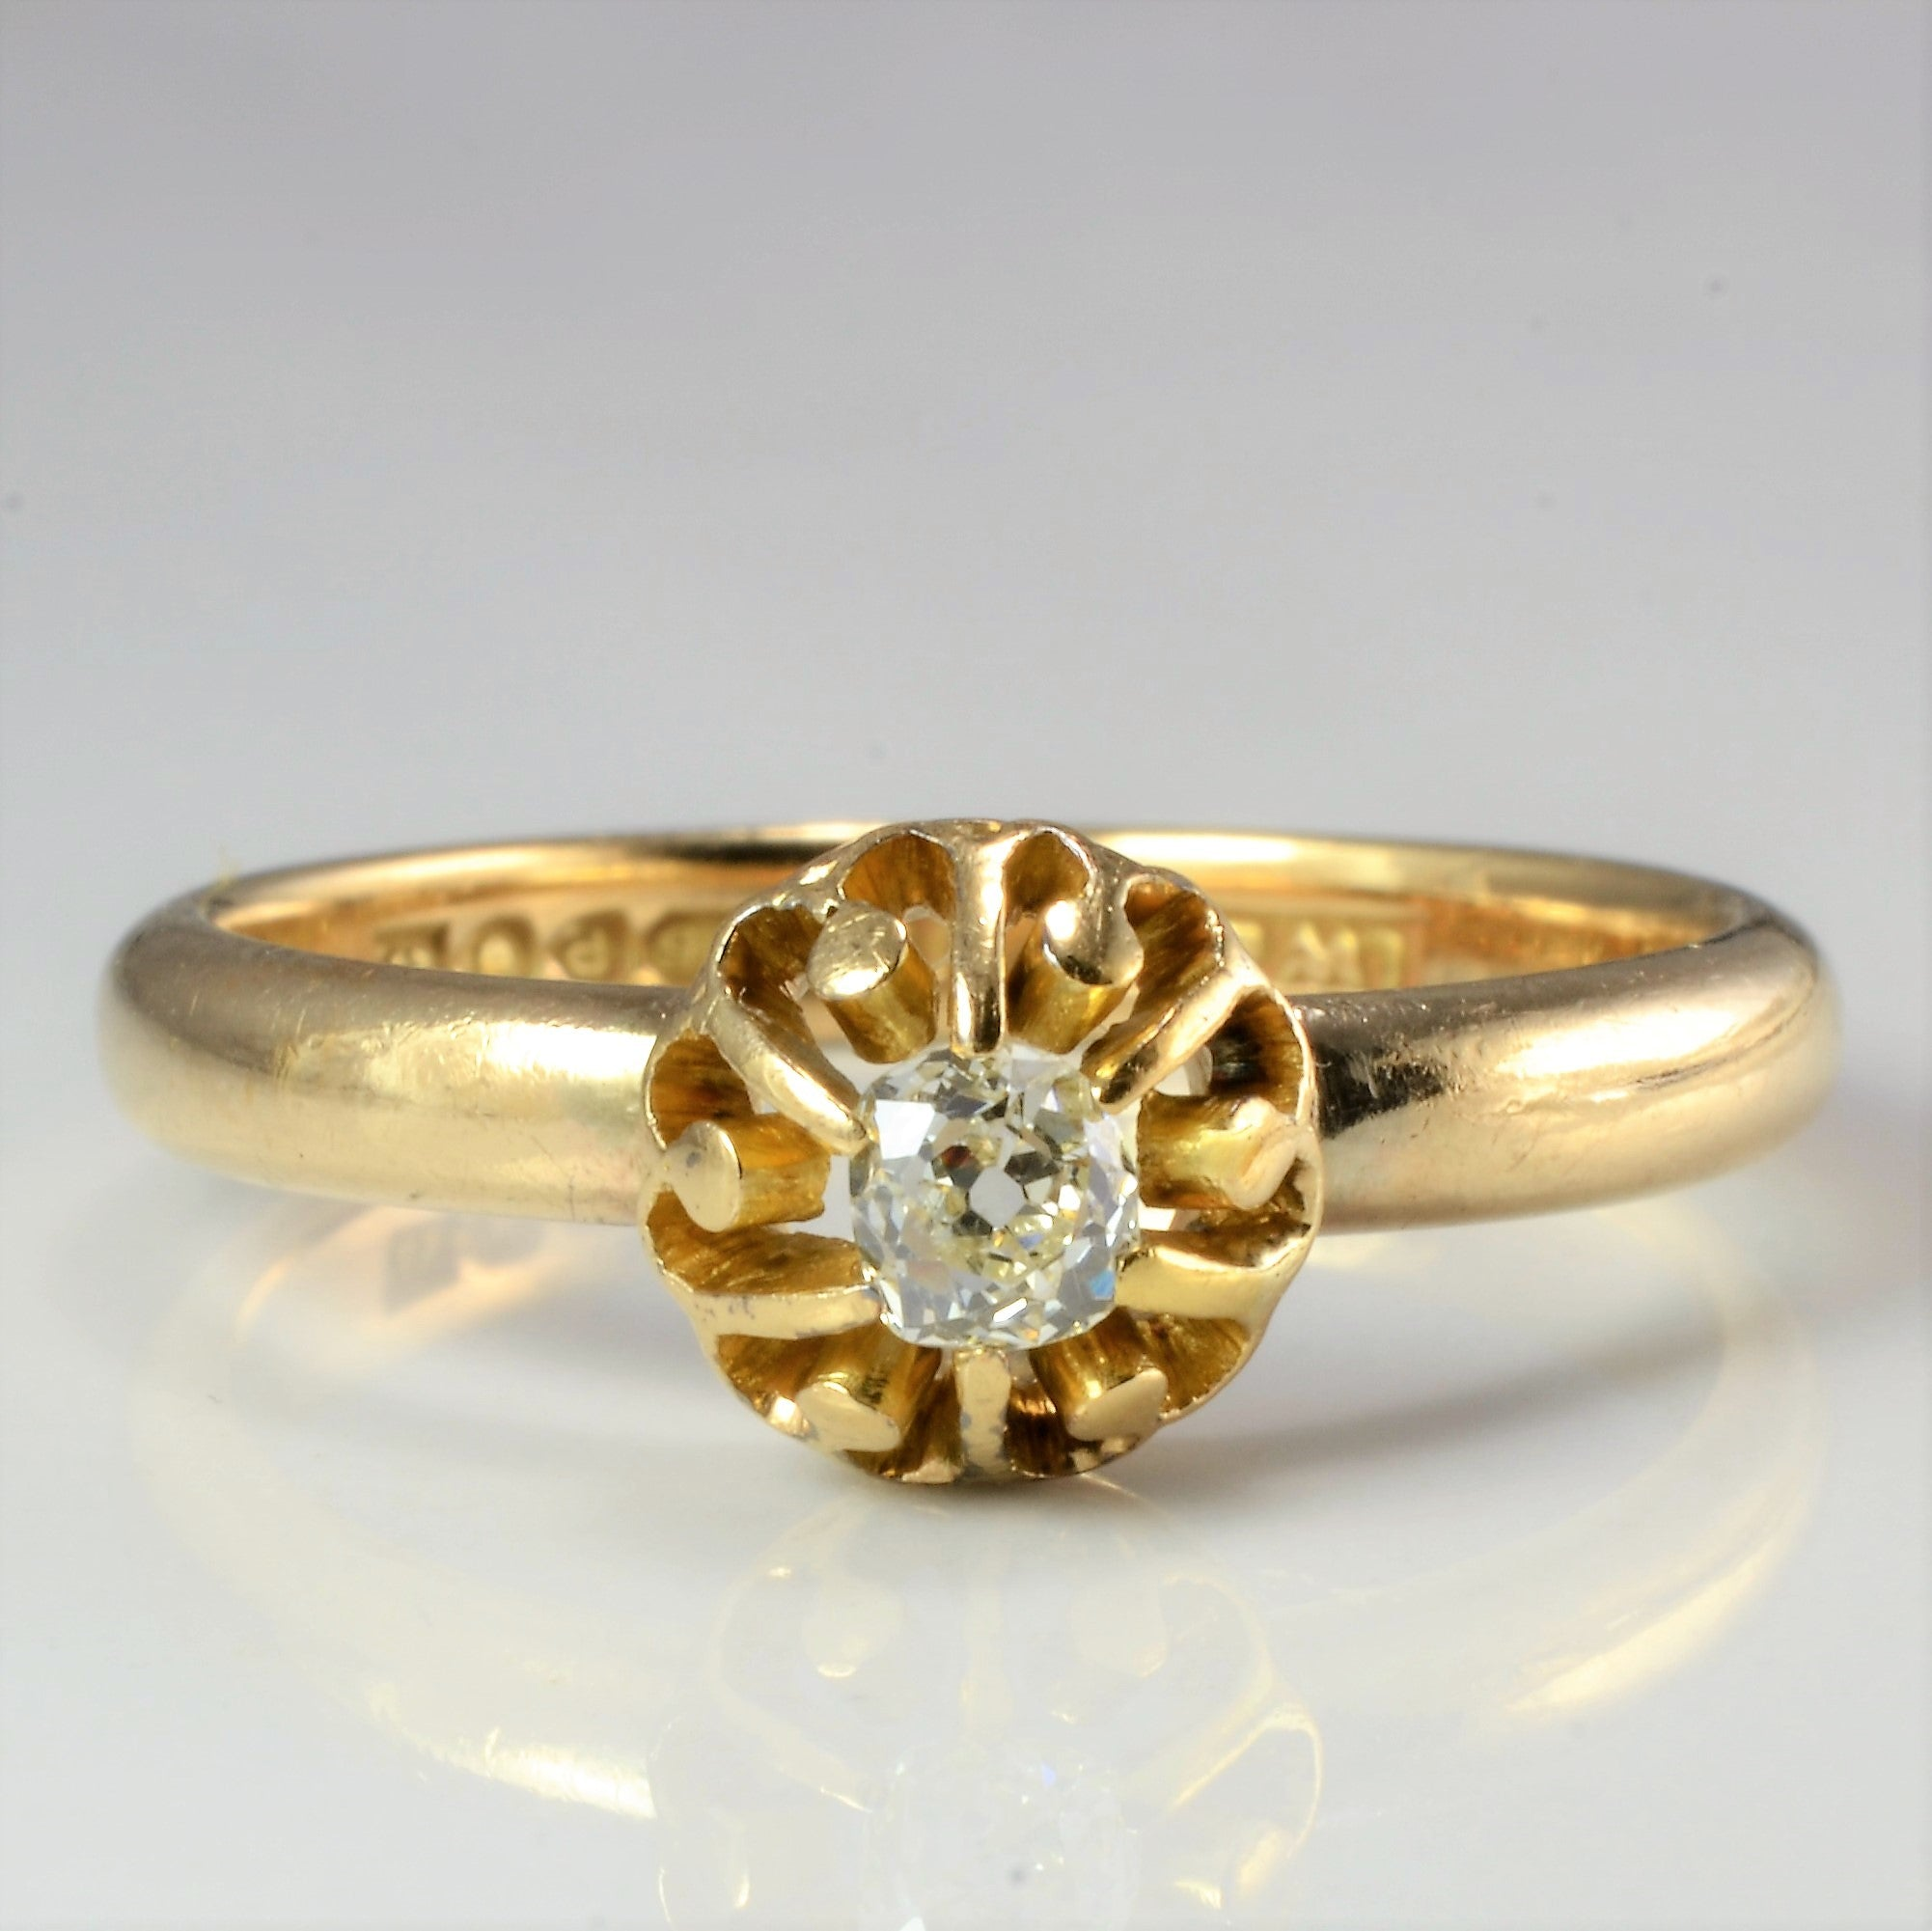 Claw Set Solitaire Diamond Vintage Ring | 0.32 ct, SZ 9.25 |